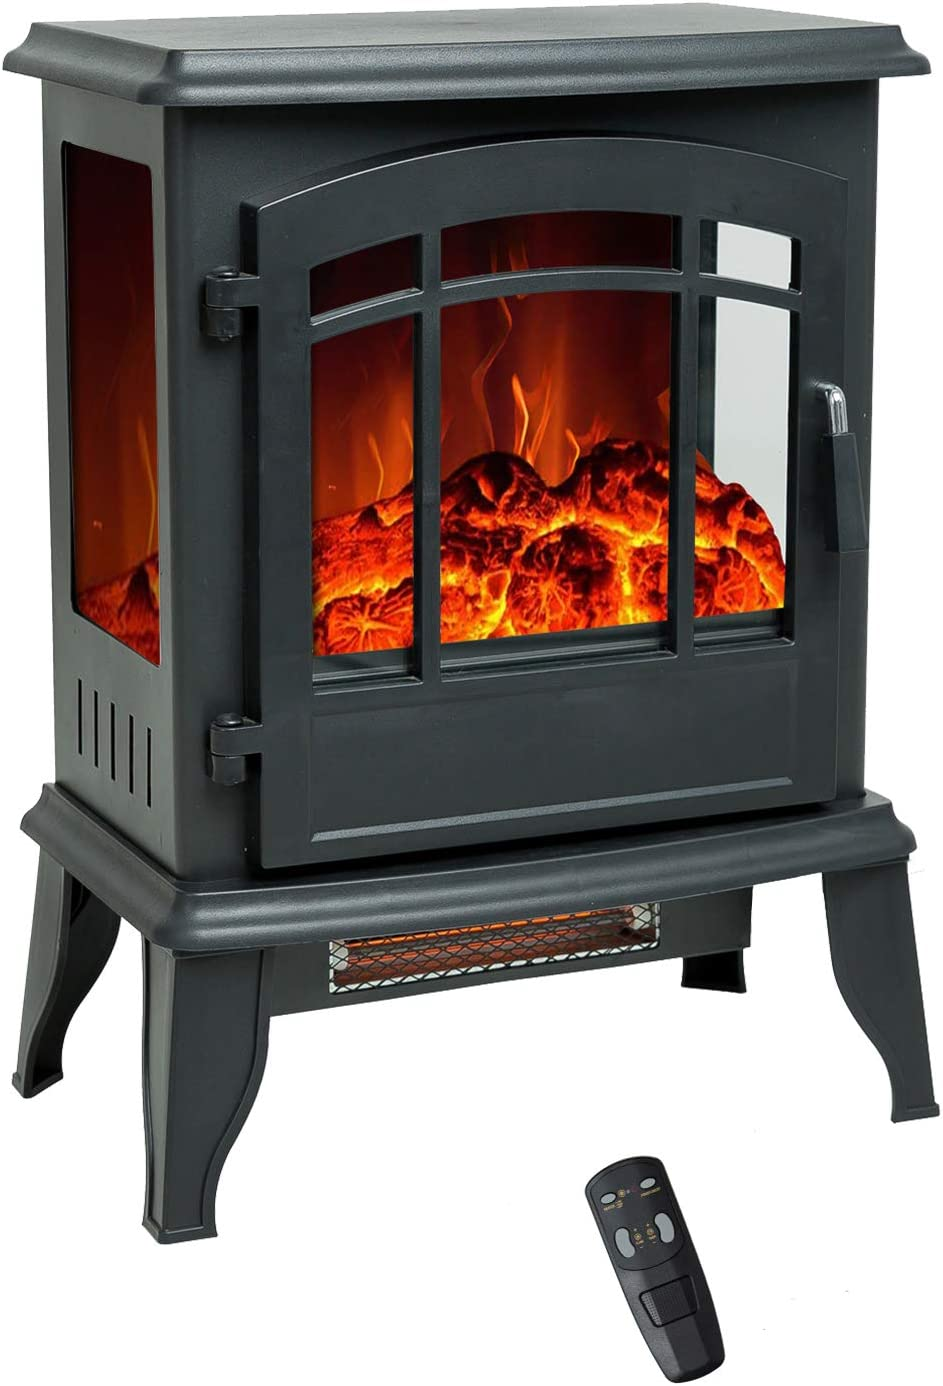 FLAME&SHADE 23 inch Electric Fireplace Wood Stove, Portable Freestanding, Indoor Space Heater with Remote & Timer, 1400w